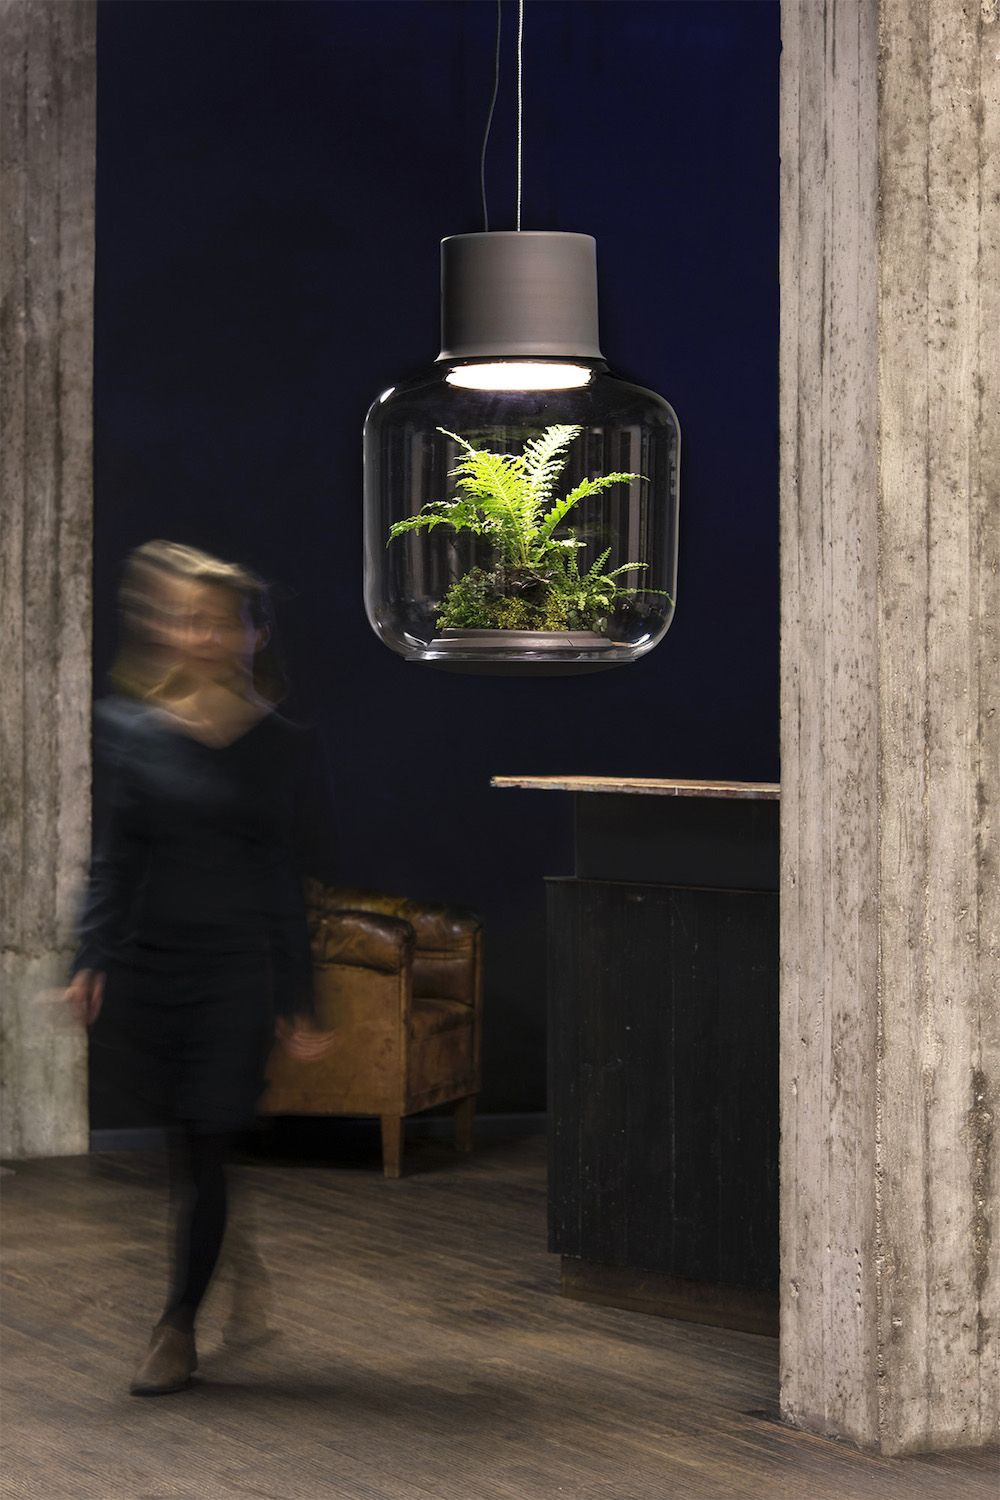 Nui studio formerly we love eames has designed a lamp fit for the